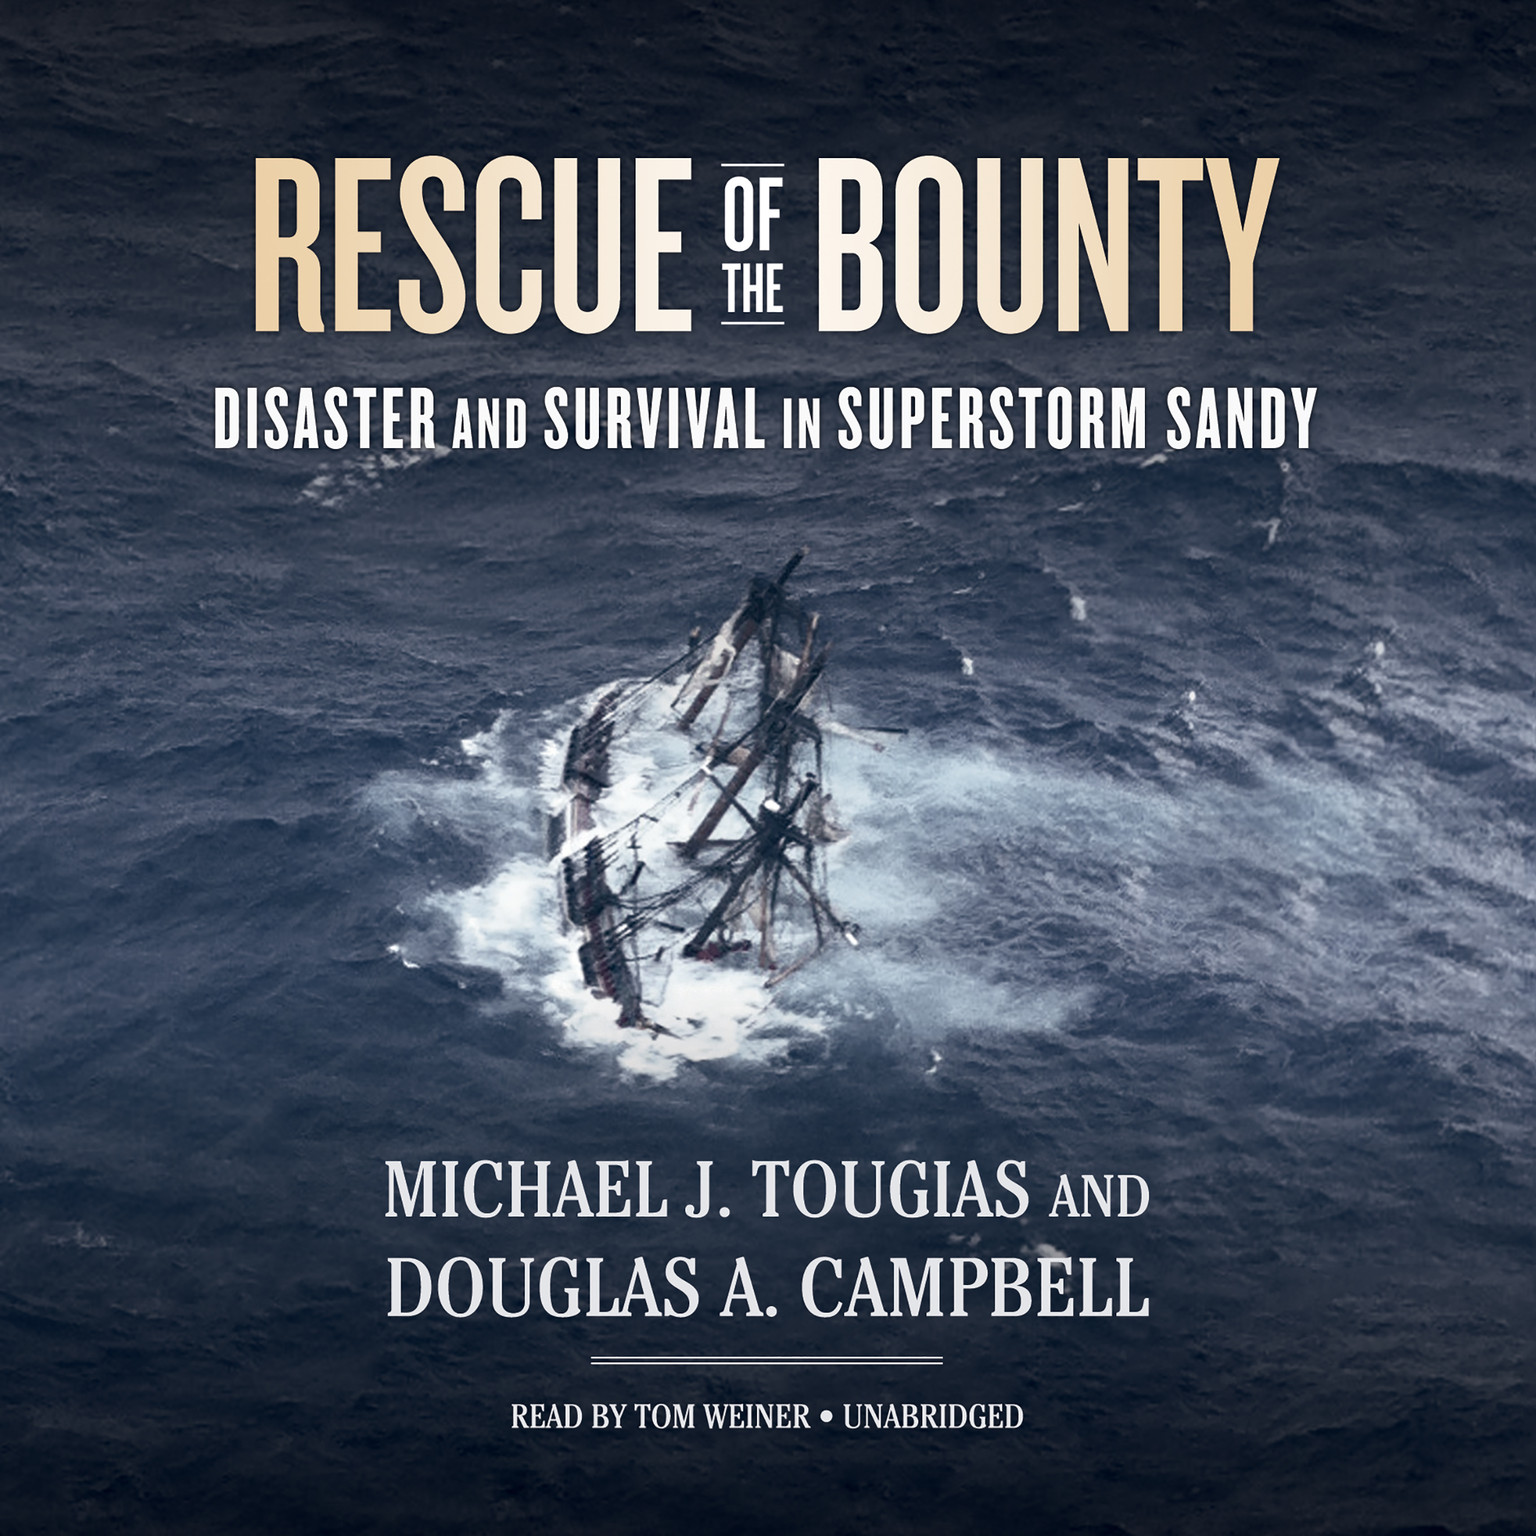 Printable Rescue of the Bounty: Disaster and Survival in Superstorm Sandy Audiobook Cover Art